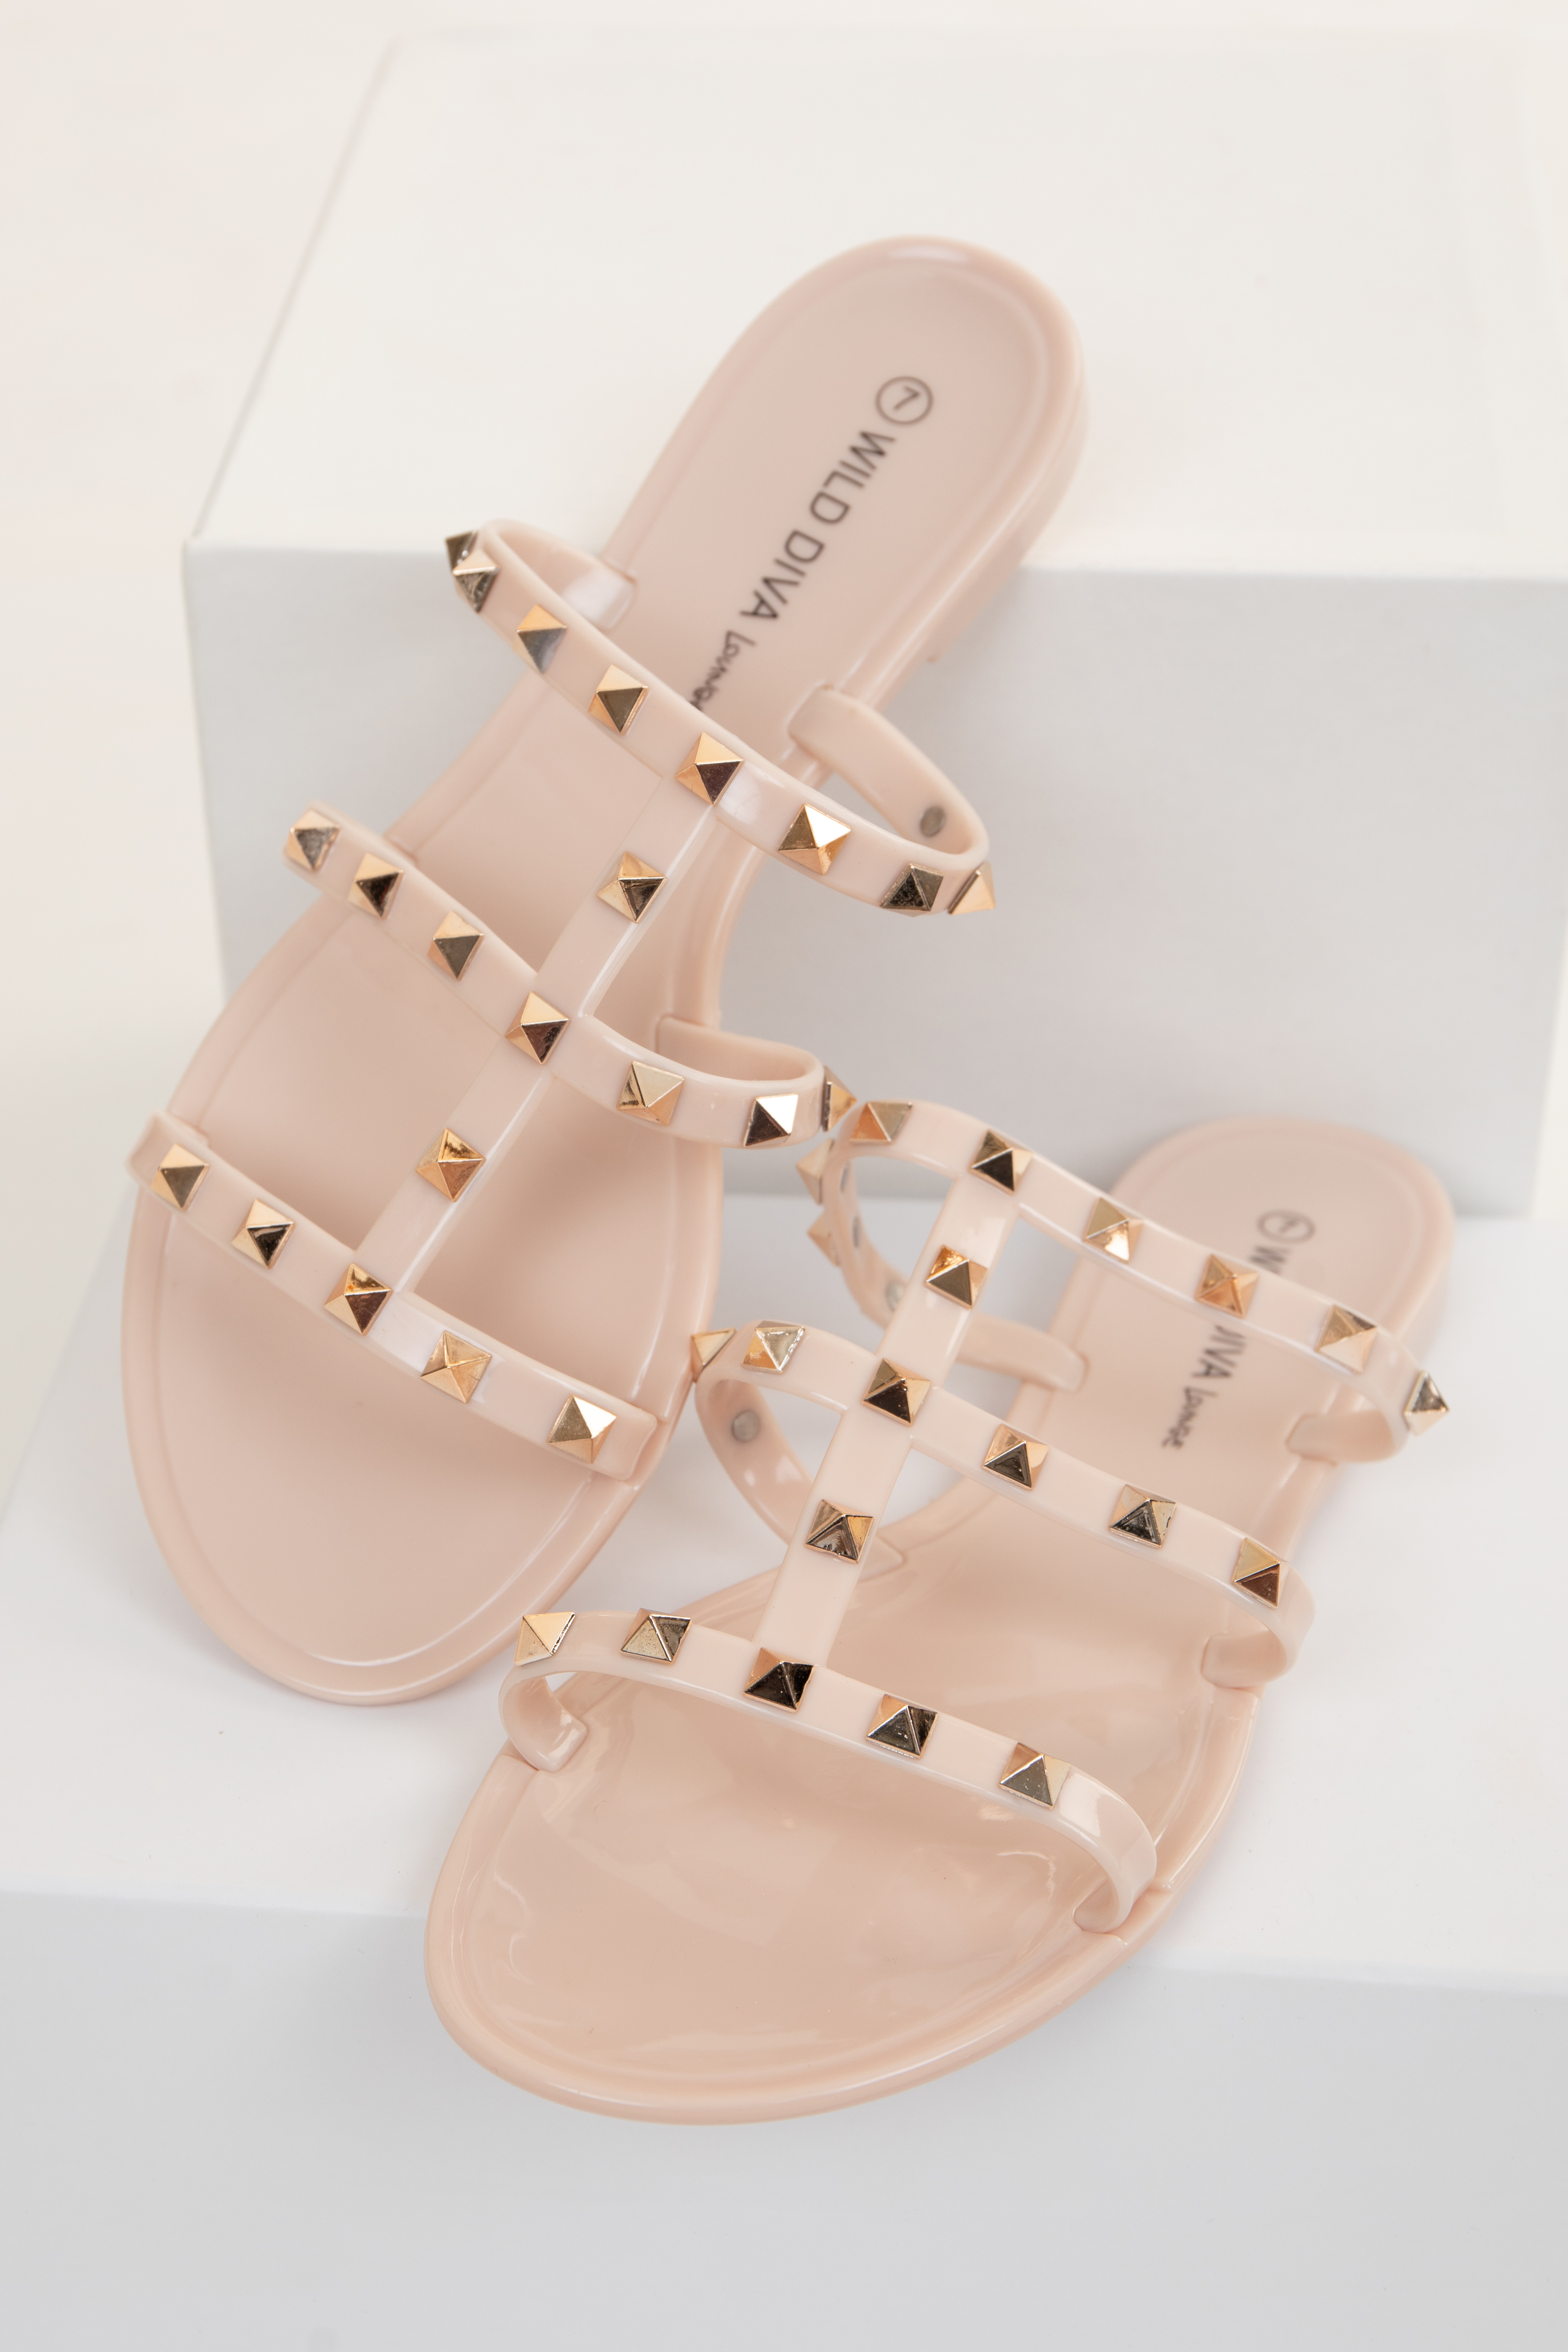 Beige Plastic Slip On Sandals with Gold Spike Details